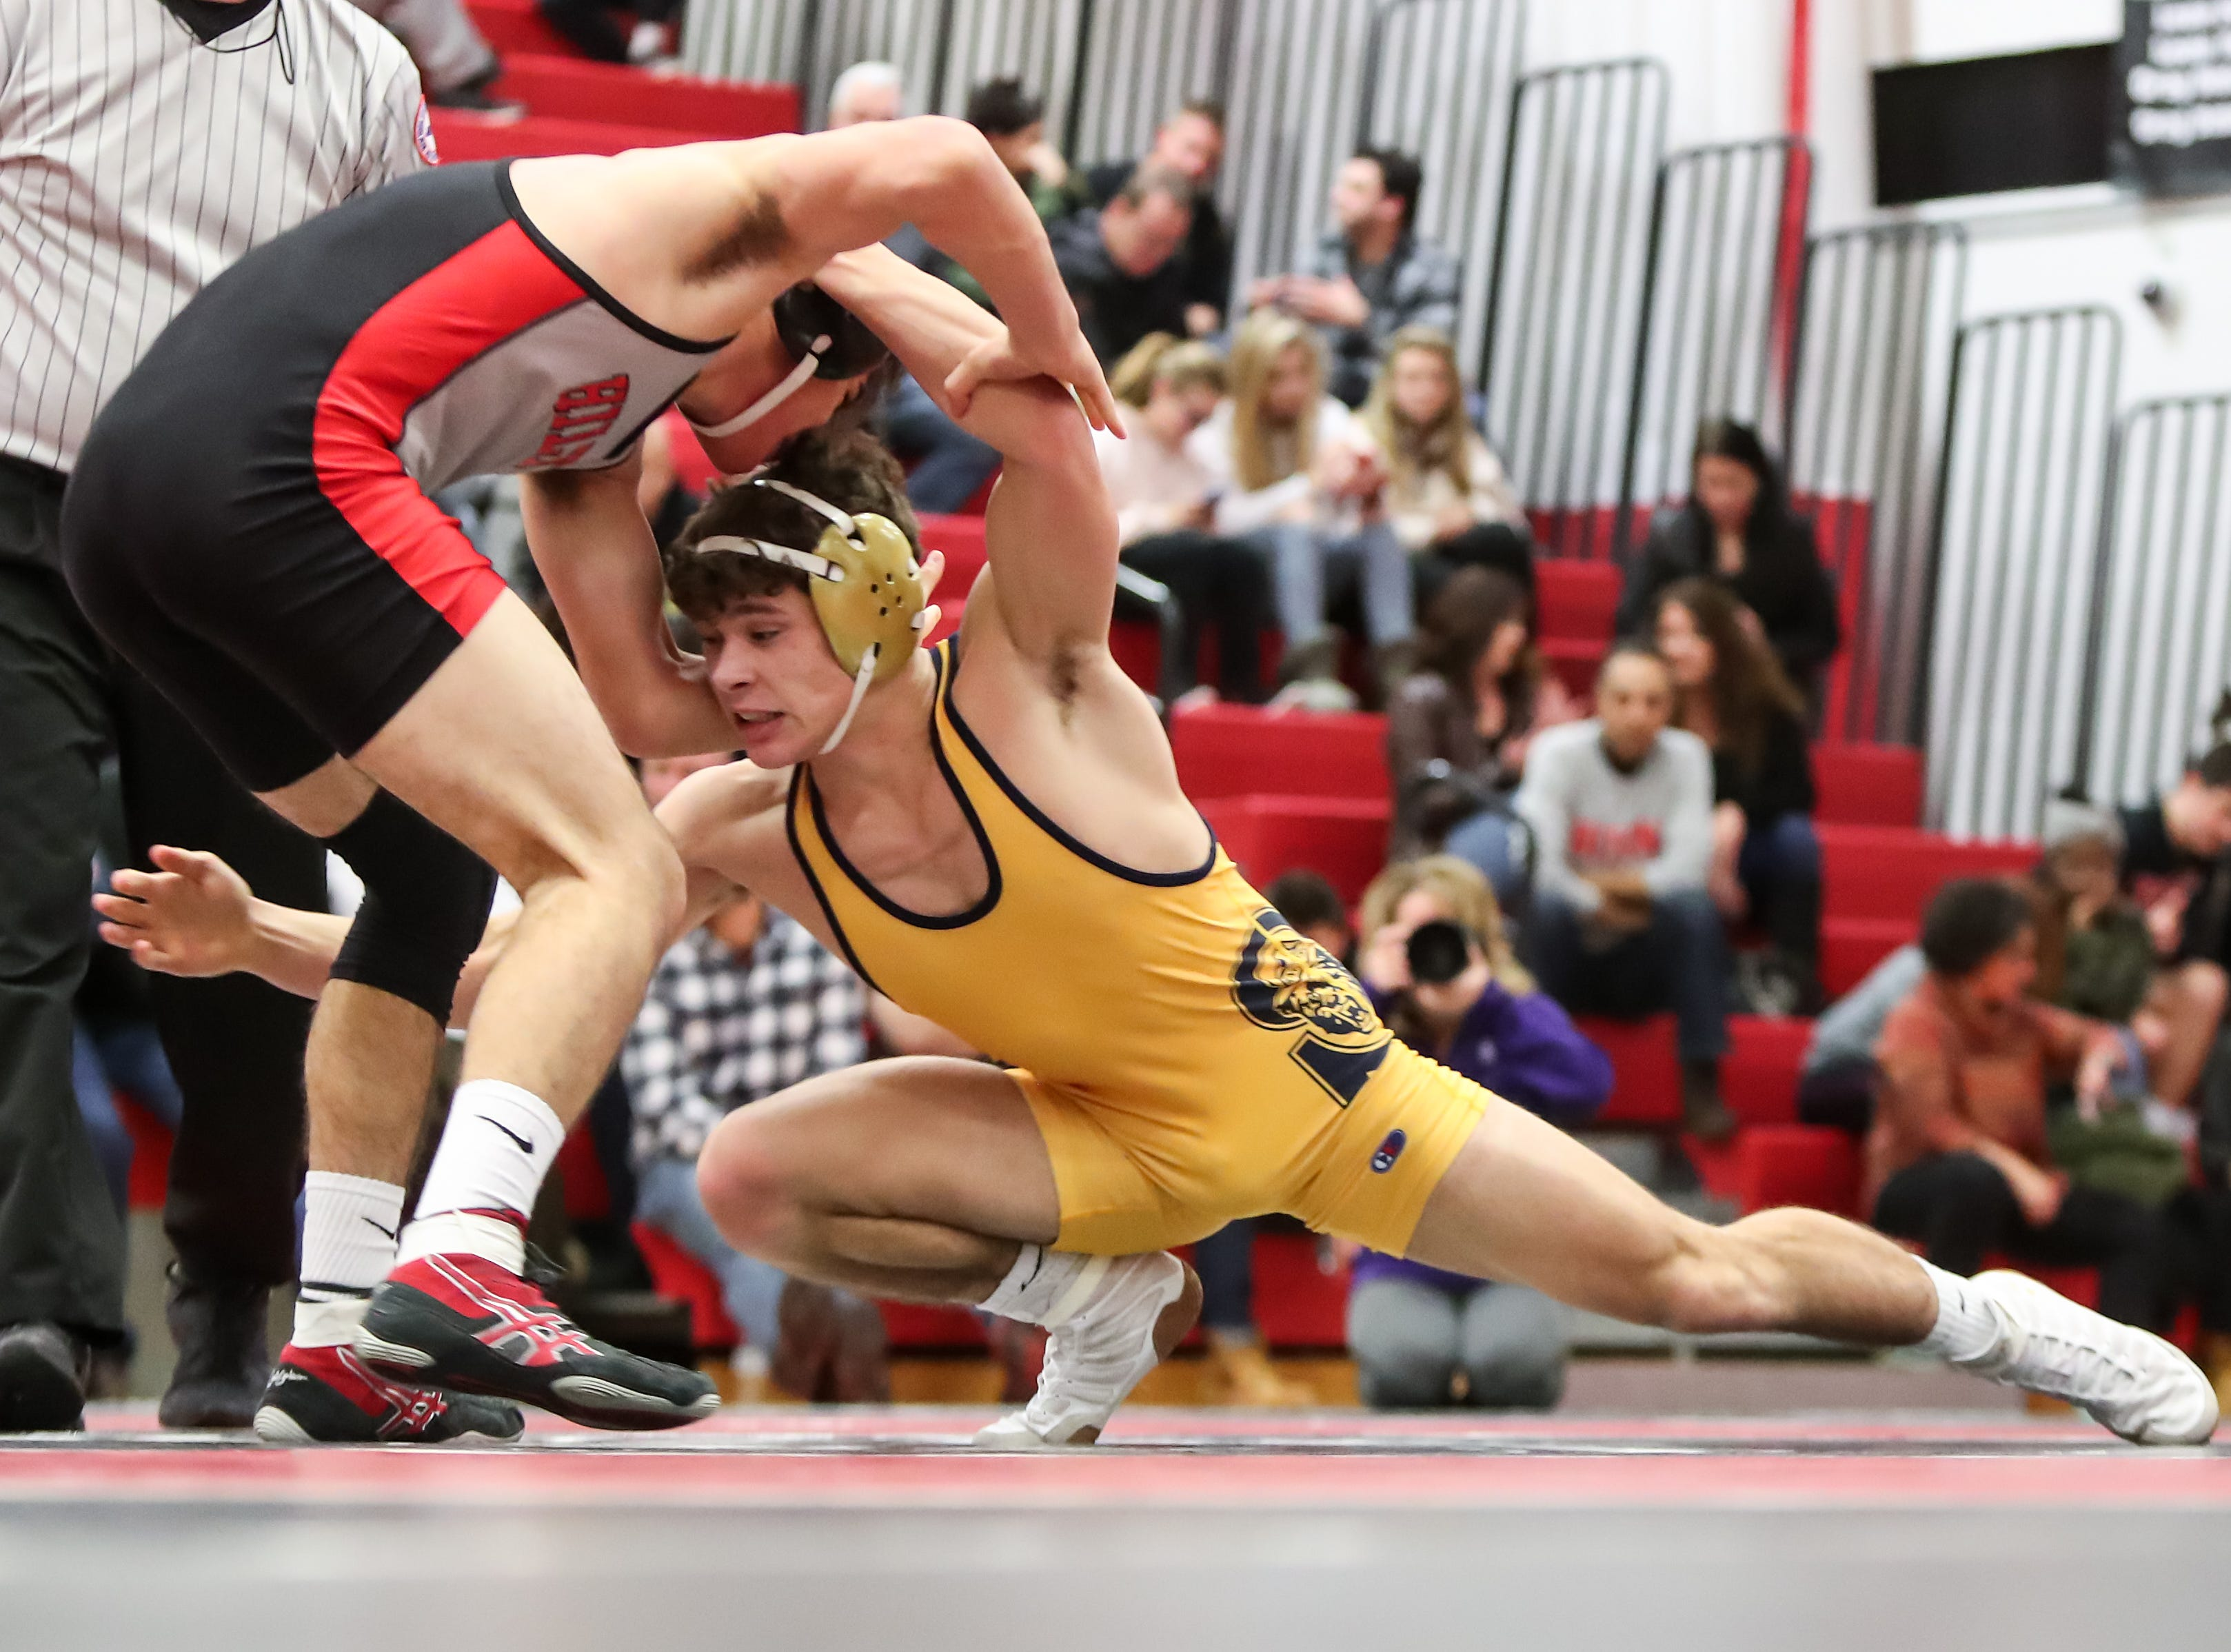 Spencerport's Mason Wersinger shoots Hilton's Jacob Soricone leg in the 145 pound weight class during the Section V high school Division I wrestling dual meet championship at Hilton High School on Jan. 5, 2018.